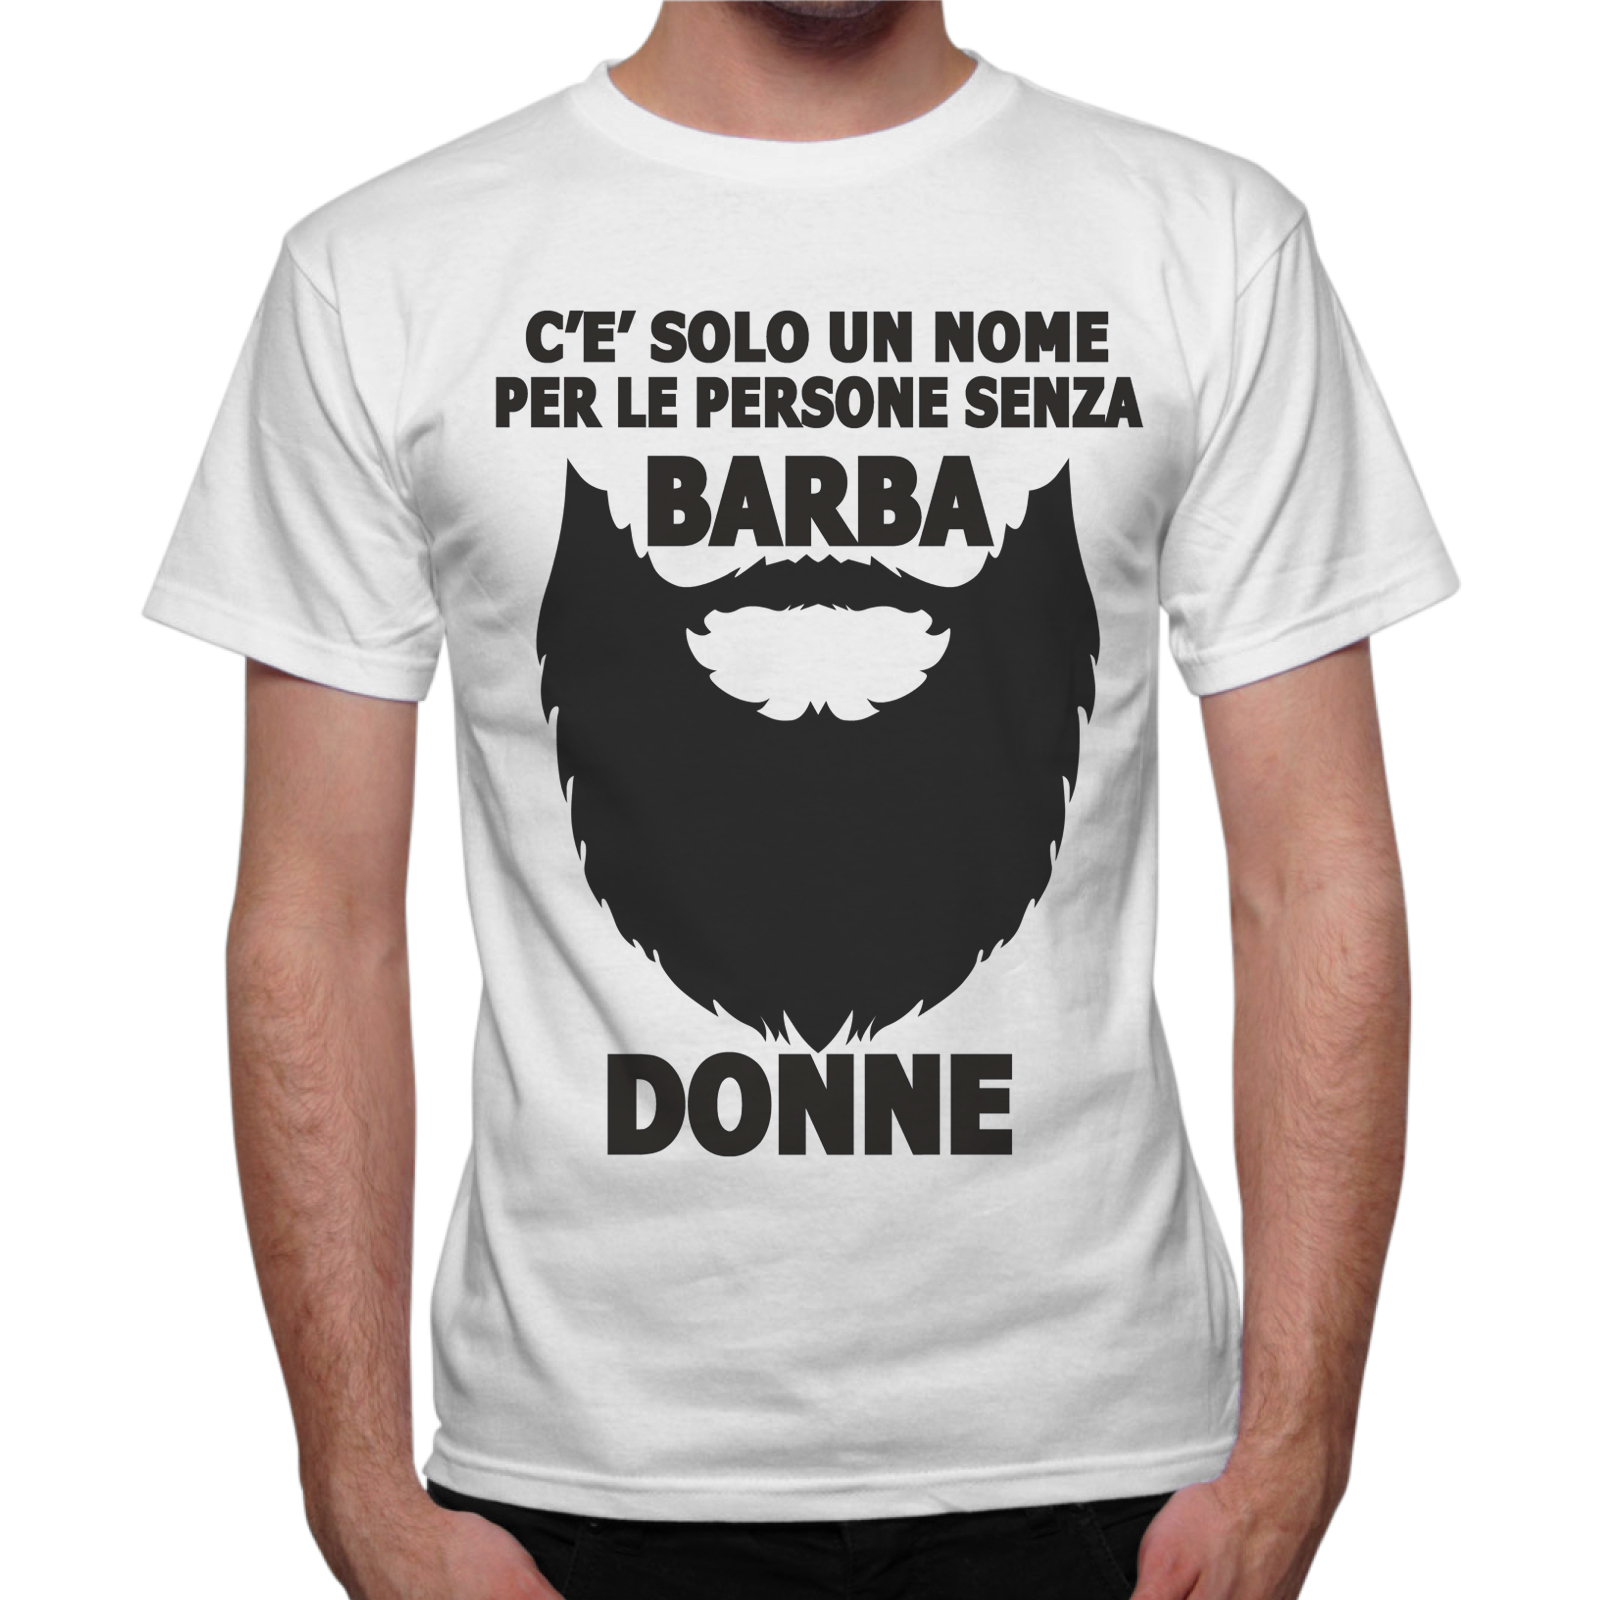 T Uomo The Shirt Senza Barba Different wknXOPNZ80